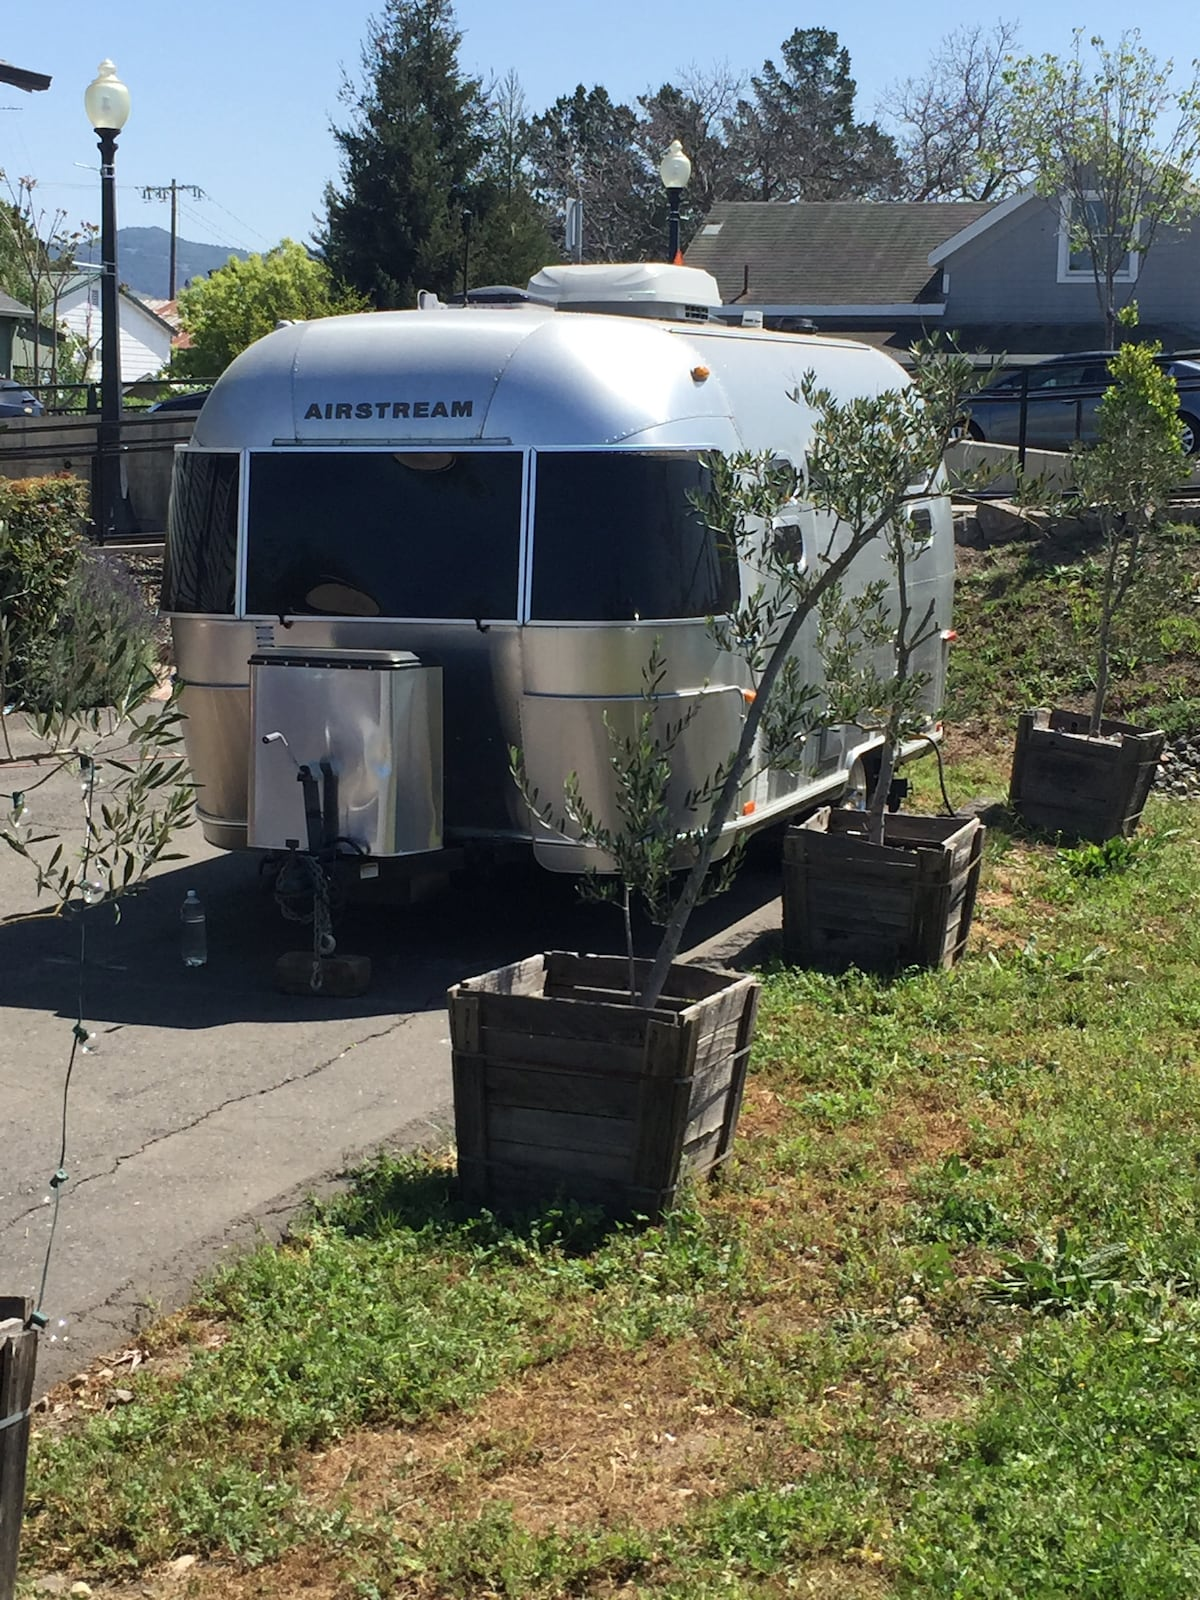 Airstream in Downtown Napa